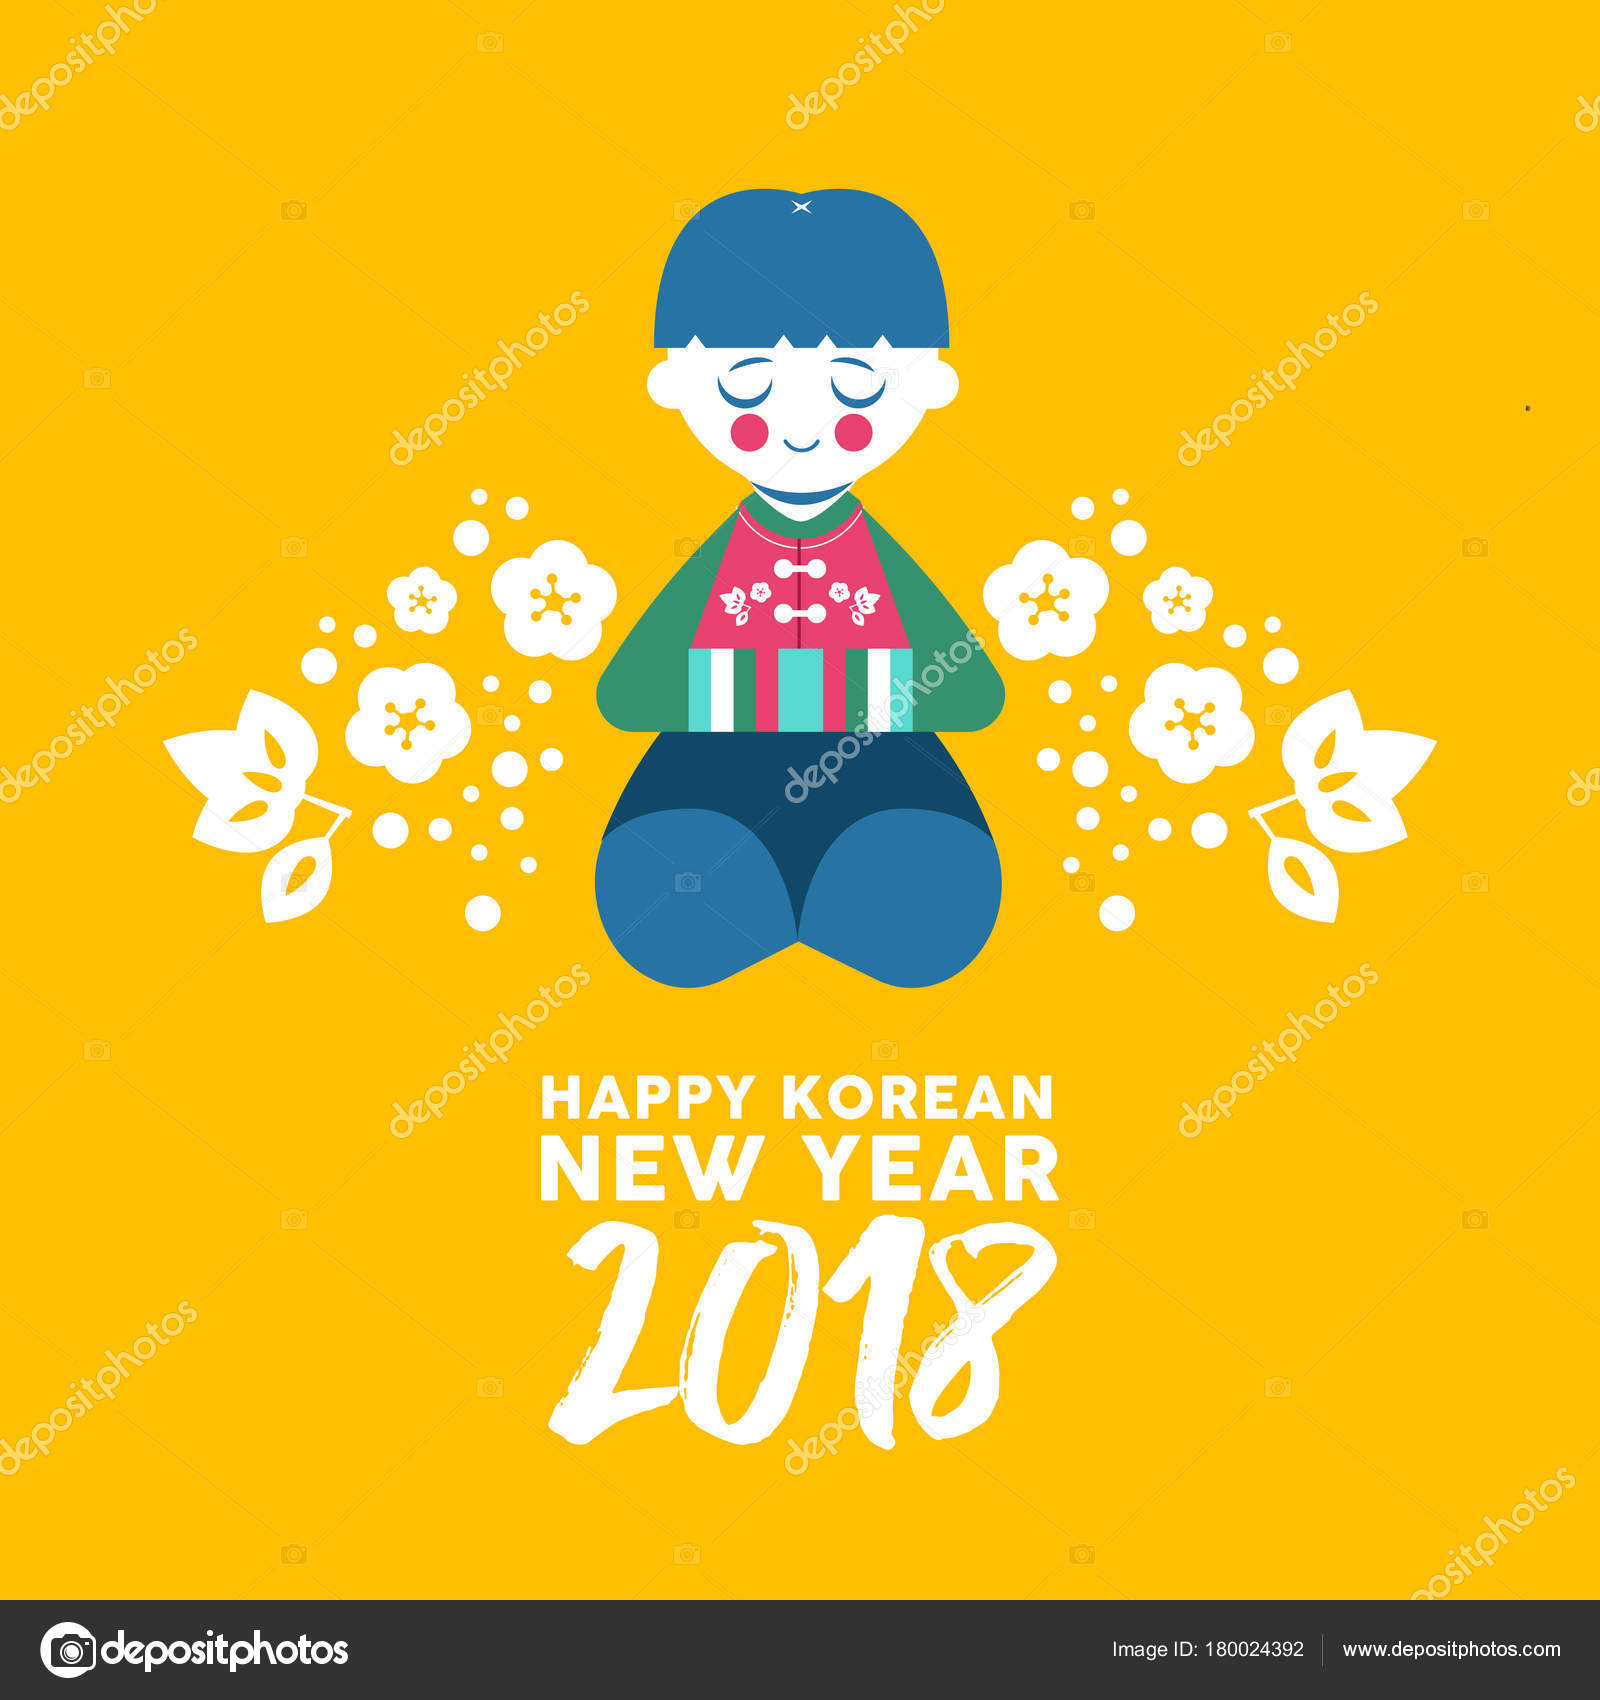 Happy korean new year 2018 greeting card cute boy bowing stock happy korean new year 2018 greeting card cute boy bowing stock vector m4hsunfo